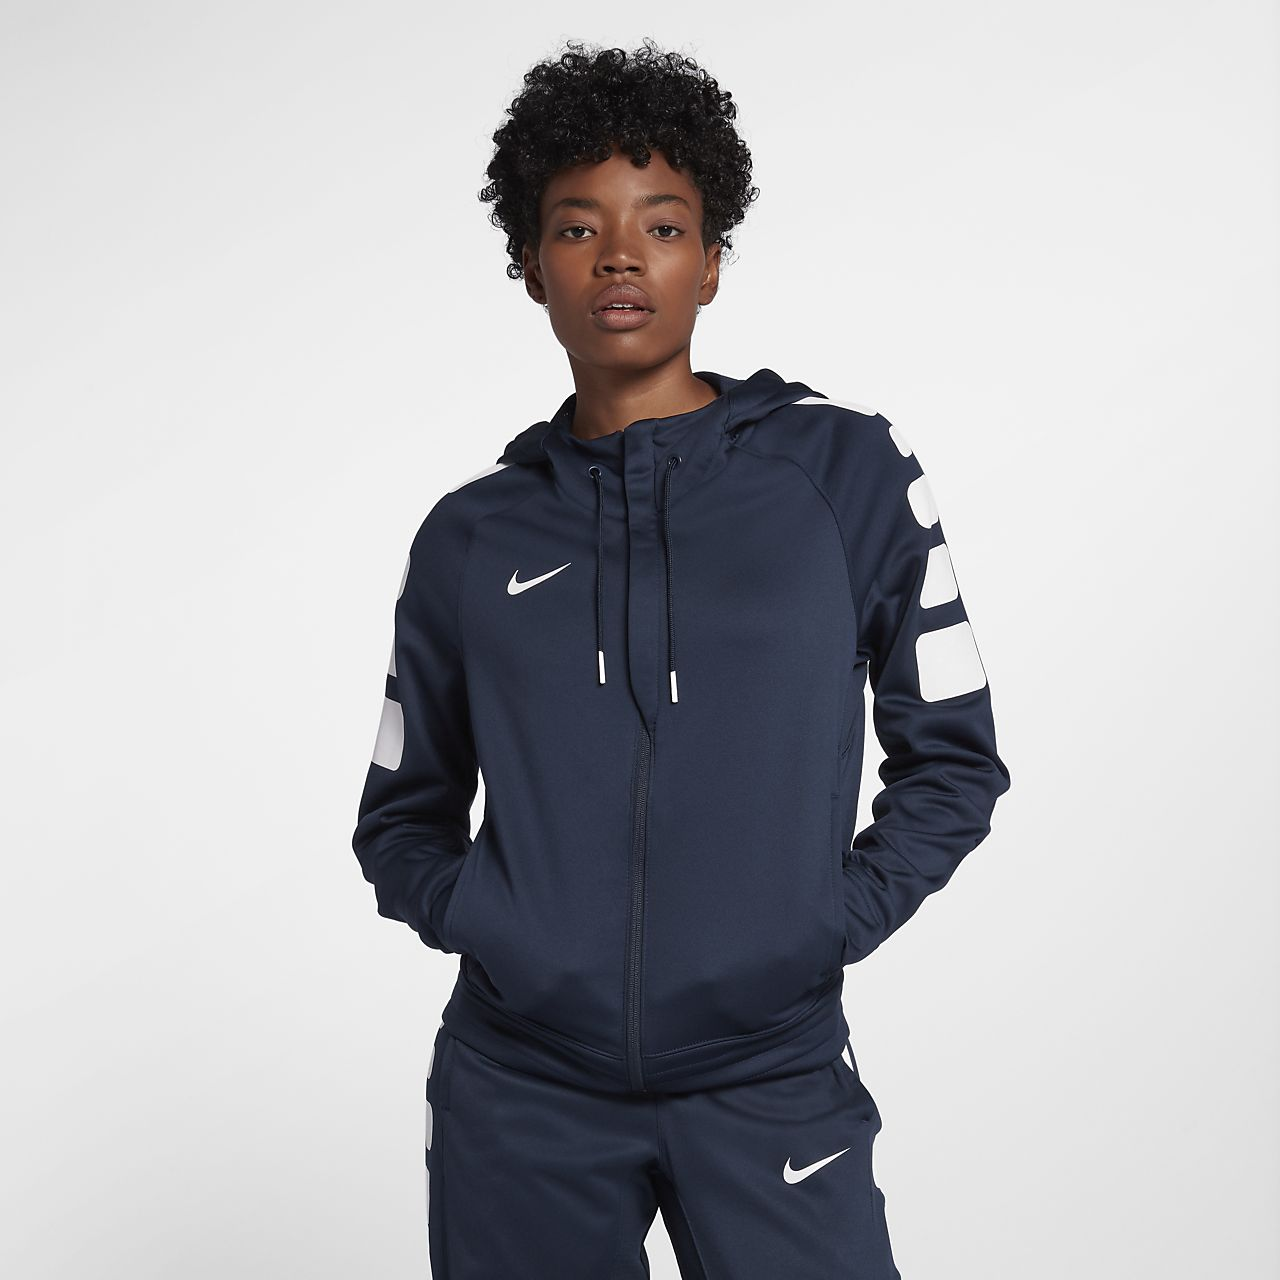 74ab2d4d1df3 Nike Therma Elite Women s Basketball Hoodie. Nike.com